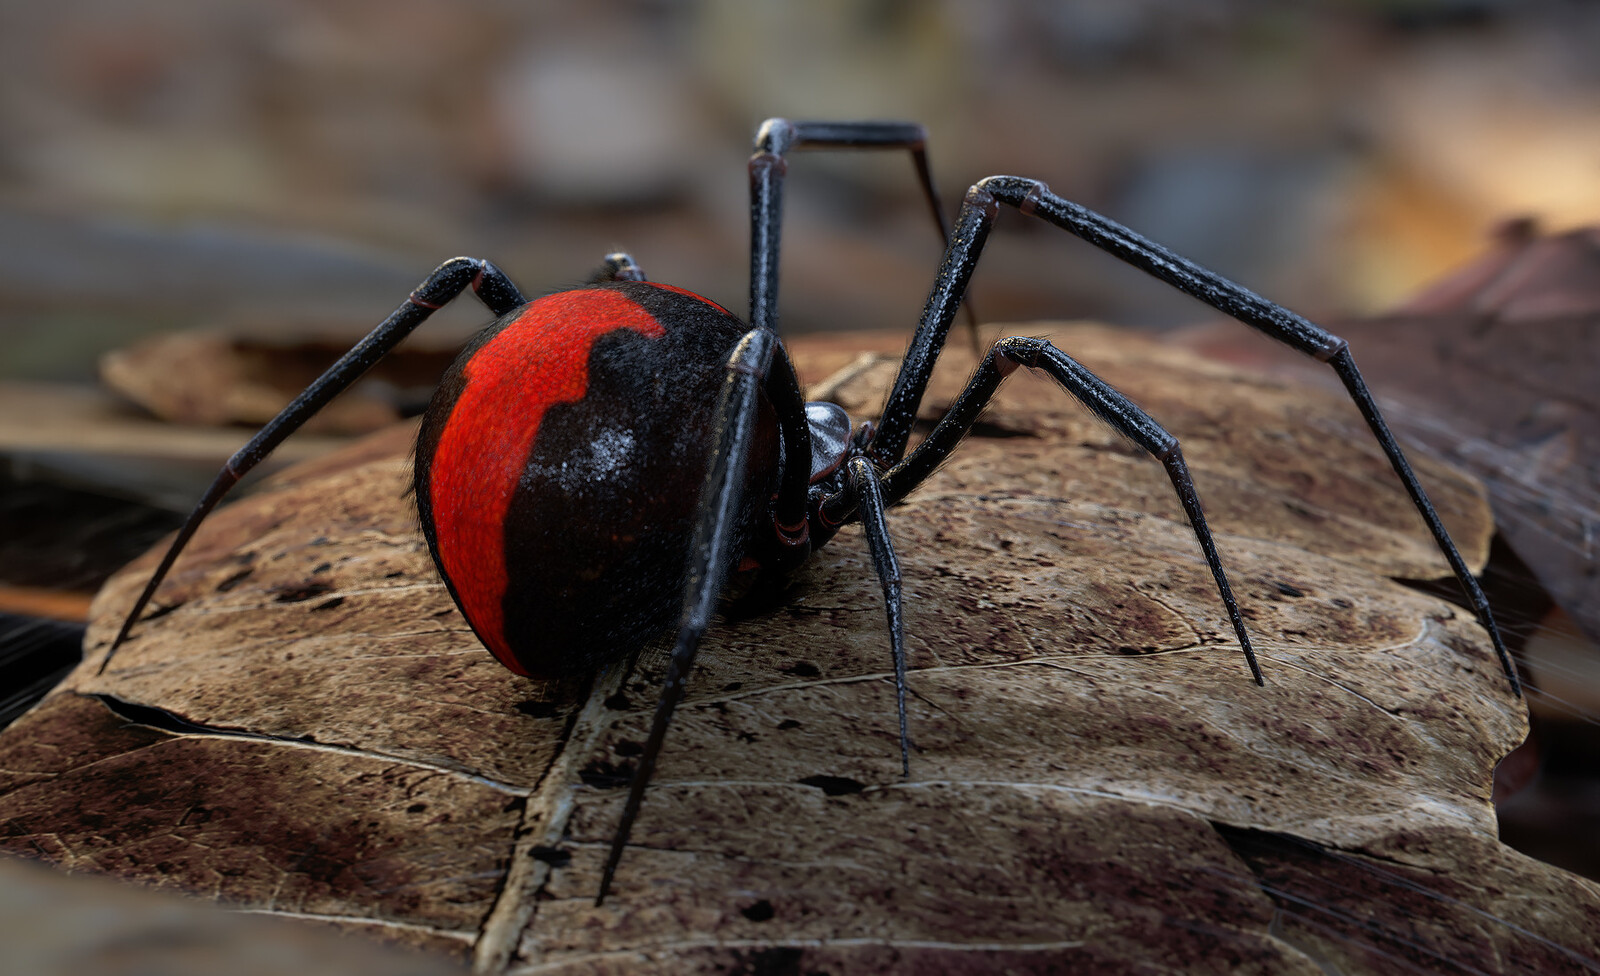 The actual reference. The Black Widow Spider.